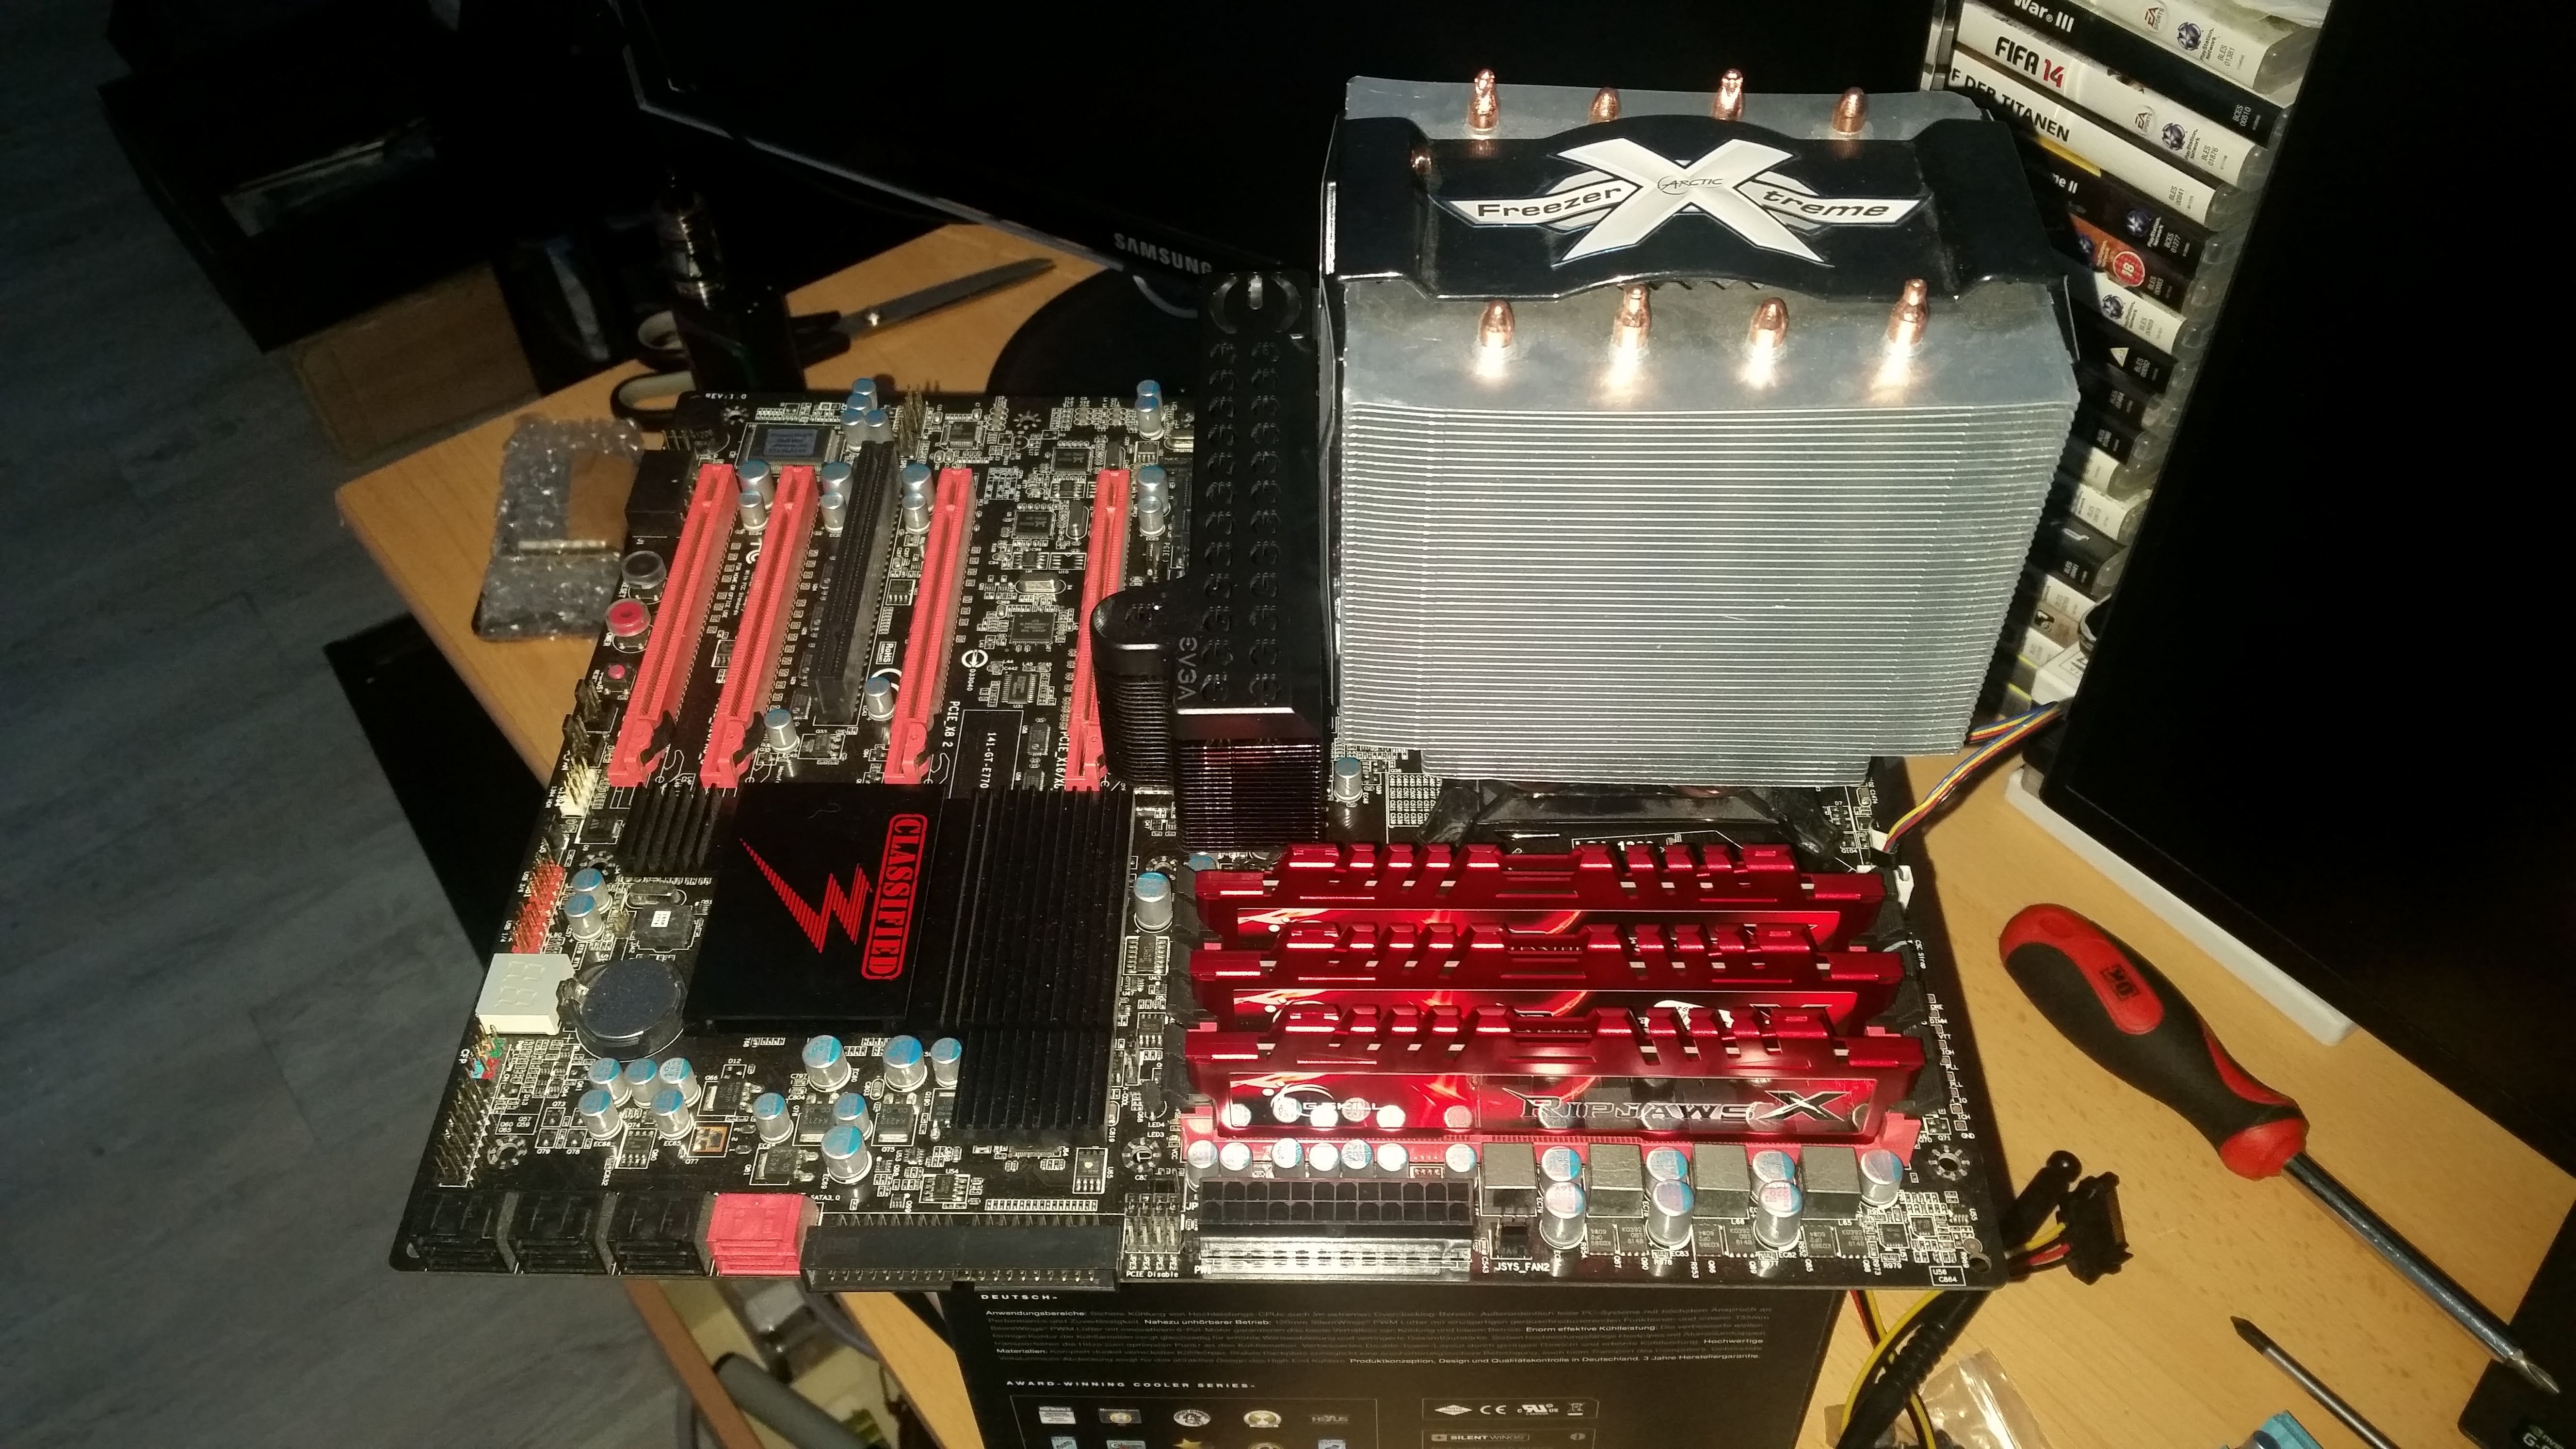 Official] - X58 Xeon Club - - Page 1255 - Overclock net - An